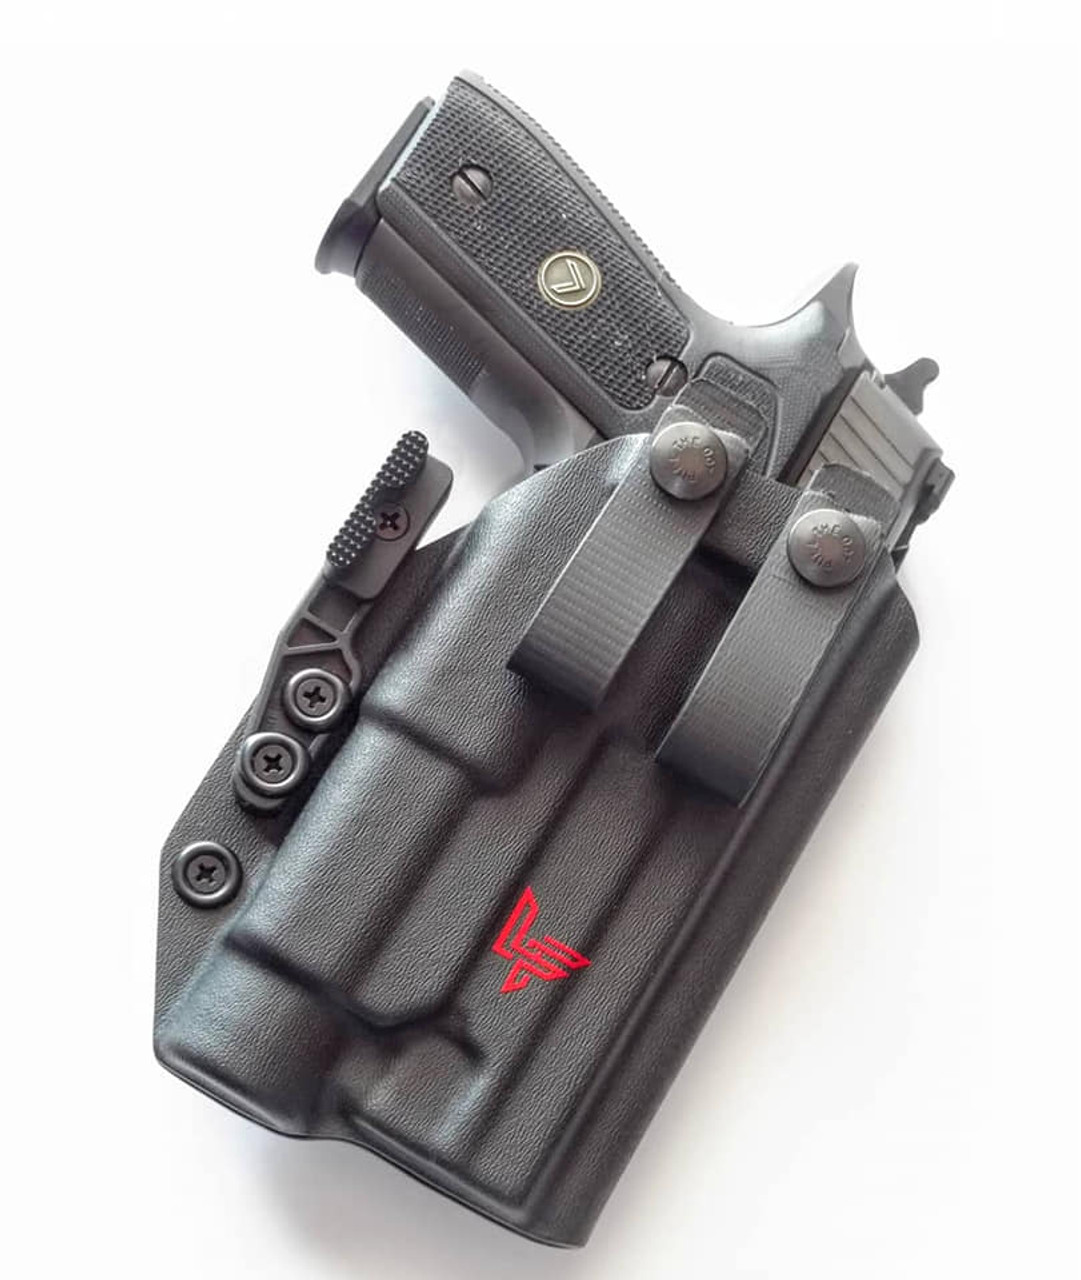 Sig P226 Legion with Streamlight TLR1 HL Appendix Carry Holster